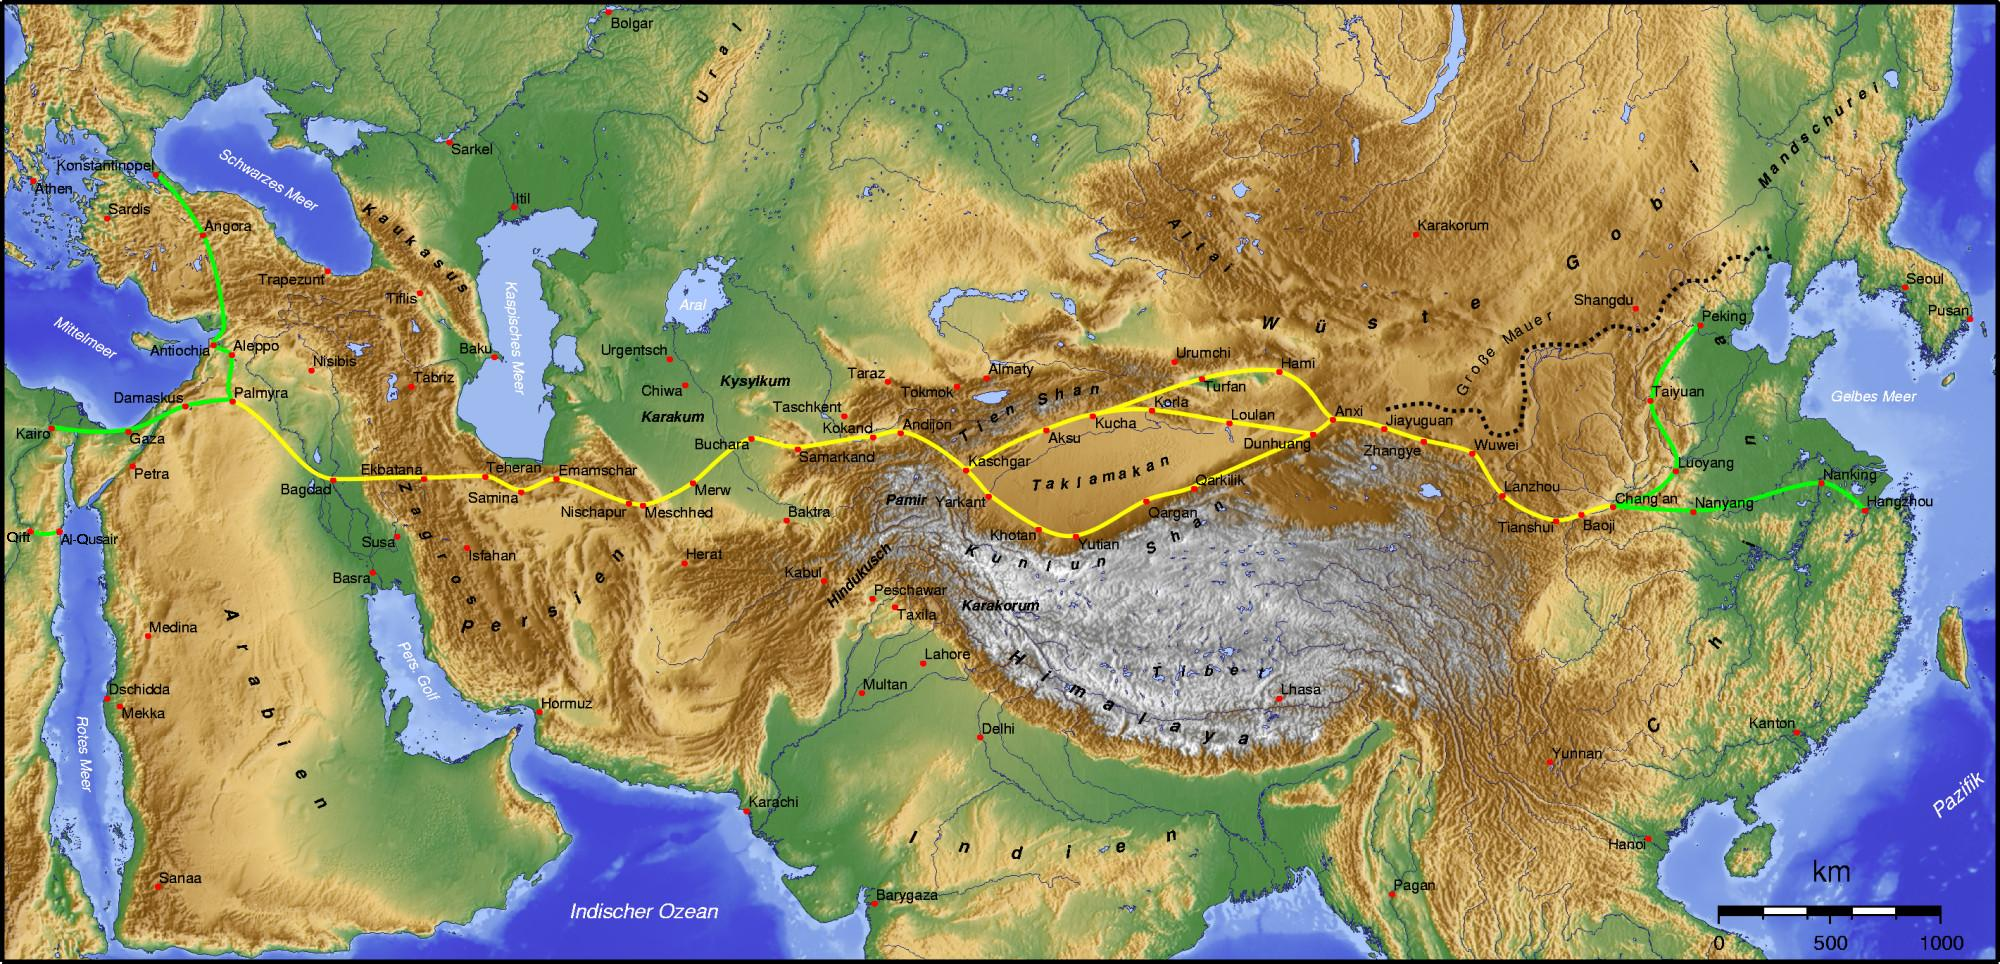 the silk road Introduction more than two thousand years ago, china's han dynasty launched the silk road, a sprawling network of commerce that linked south and central asia with the middle east and europe.